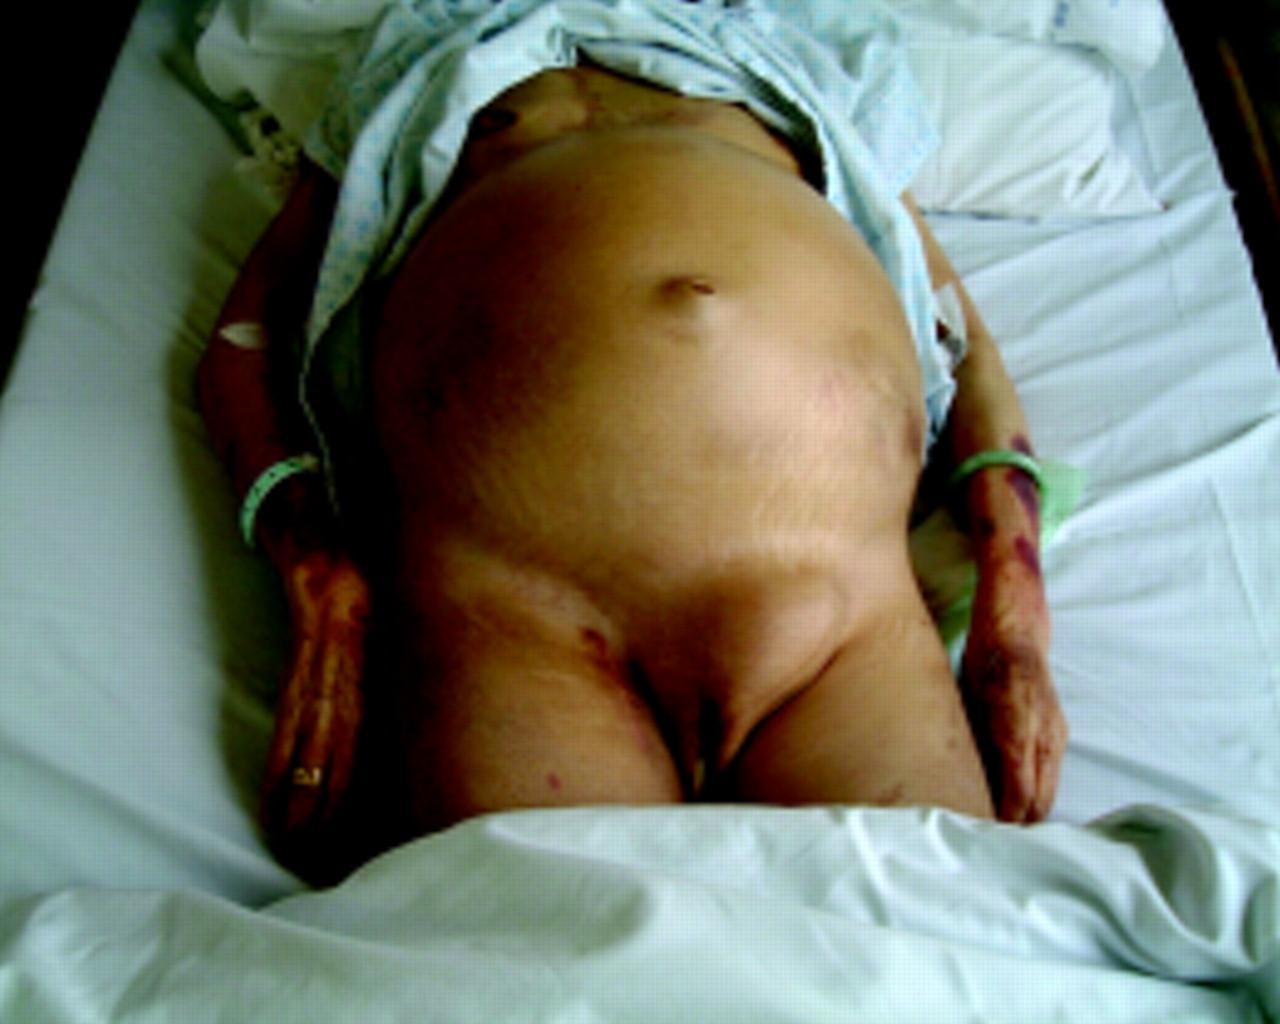 portal hypertension 2 ascites encephalopathy and other conditions